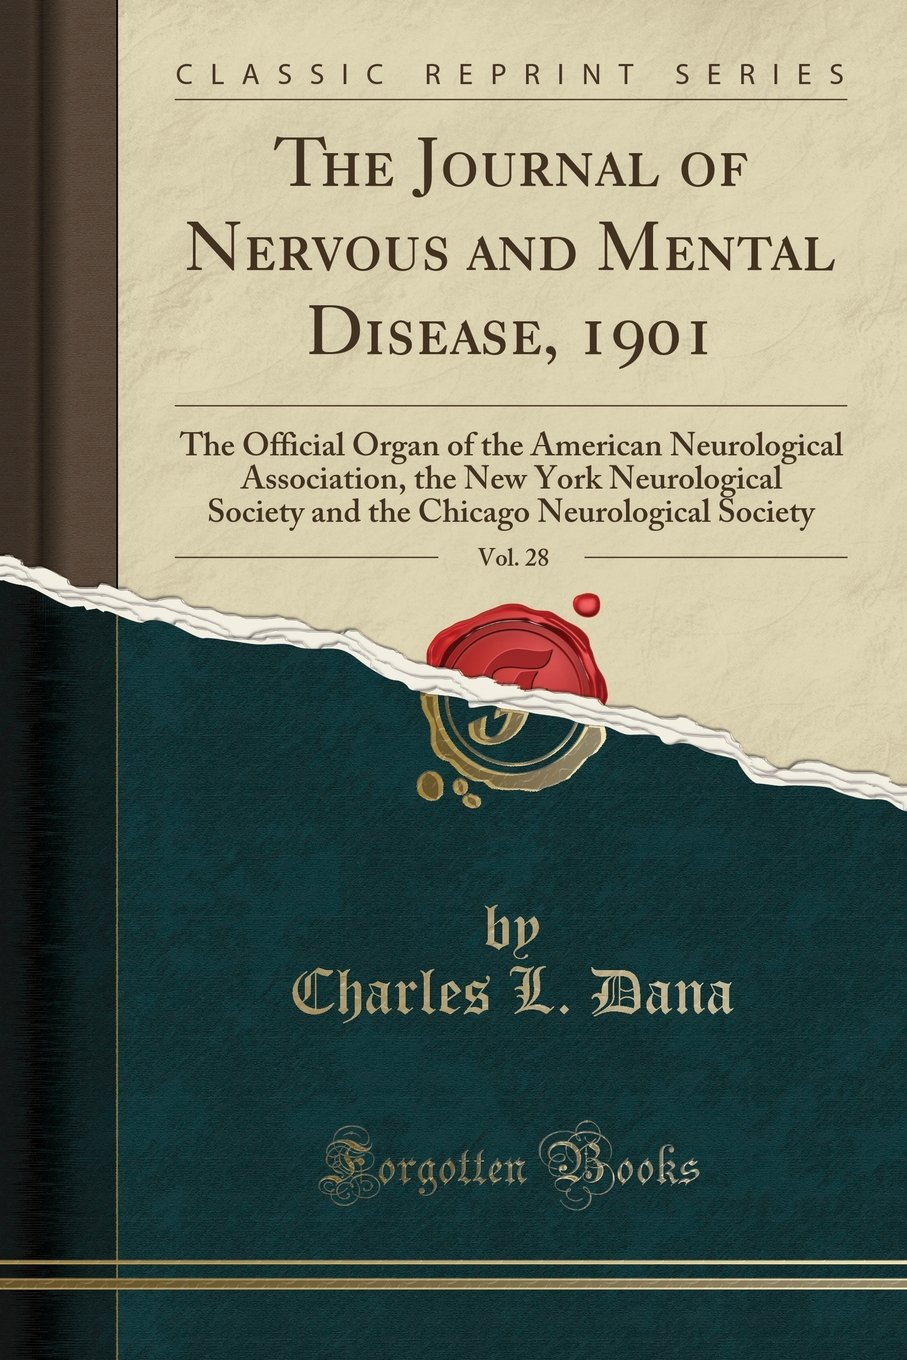 Download The Journal of Nervous and Mental Disease, 1901, Vol. 28: The Official Organ of the American Neurological Association, the New York Neurological ... Neurological Society (Classic Reprint) pdf